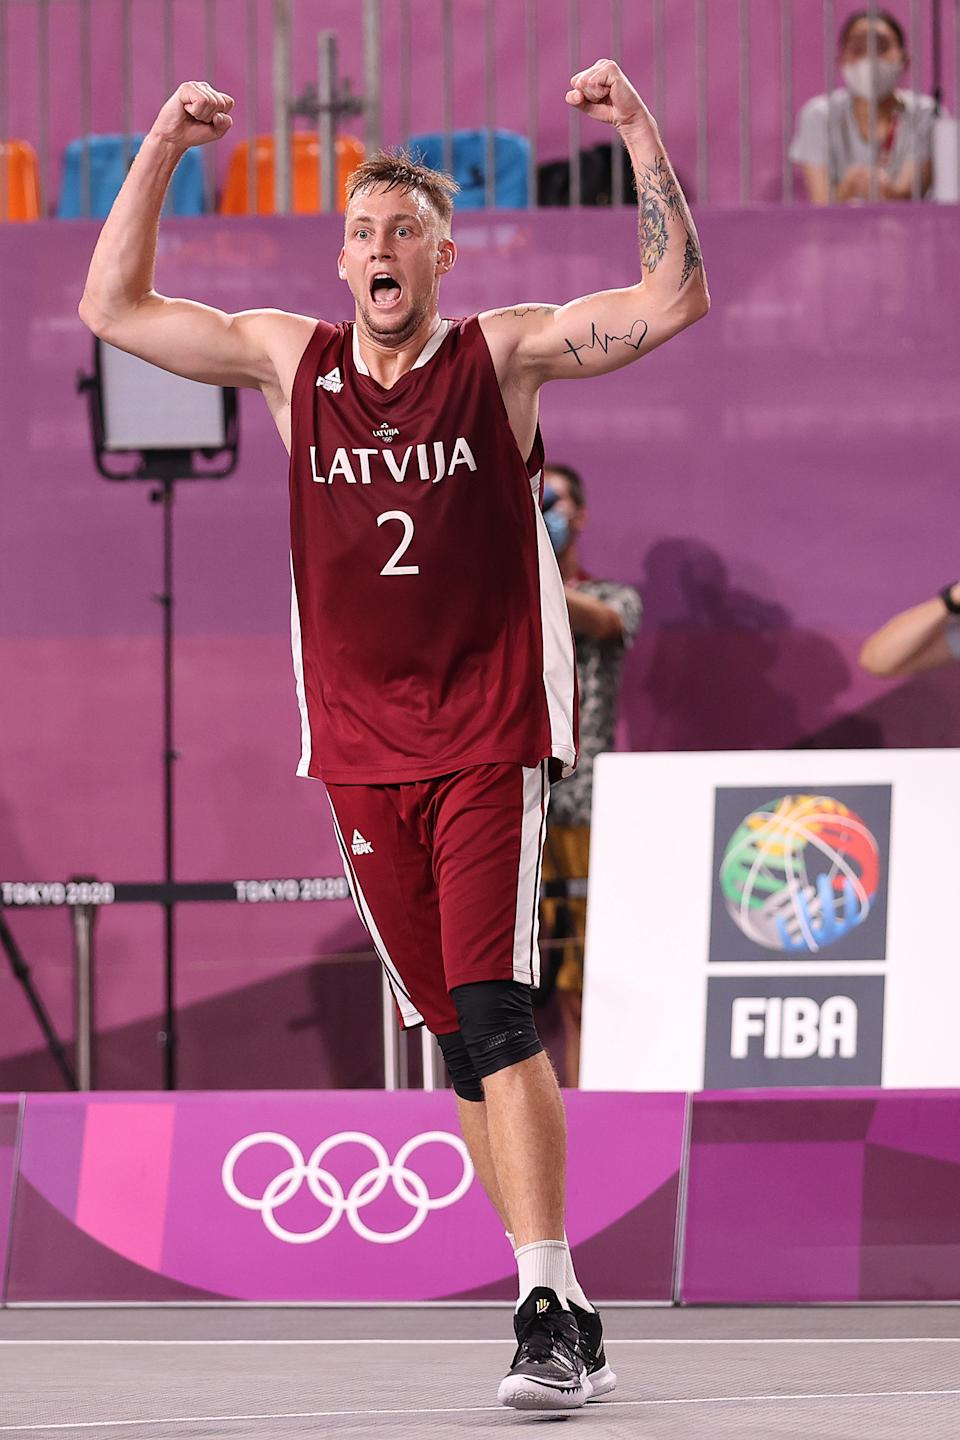 <p>TOKYO, JAPAN - JULY 28: Karlis Lasmanis of Team Latvia celebrates victory and winning the gold medal in the 3x3 Basketball competition on day five of the Tokyo 2020 Olympic Games at Aomi Urban Sports Park on July 28, 2021 in Tokyo, Japan. (Photo by Christian Petersen/Getty Images)</p>